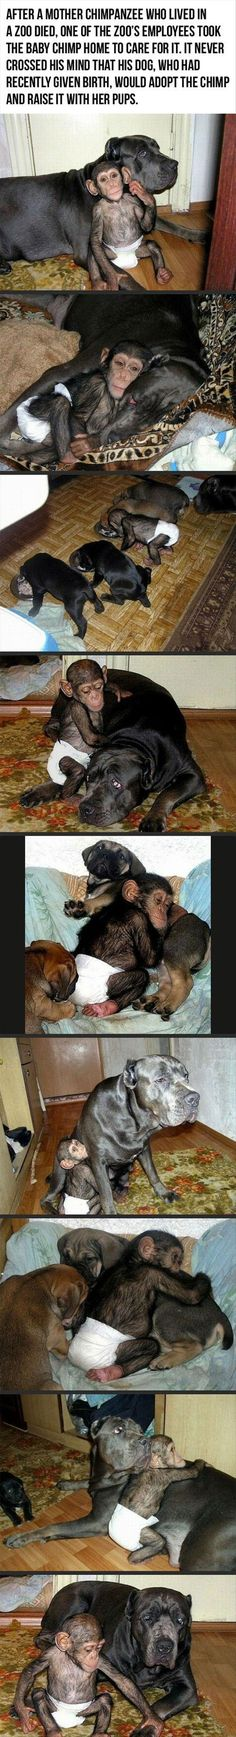 Mother dog and baby chimp- so sweet could there be anything more adorable. This is one of the most loving, beautiful, cutest things ever!